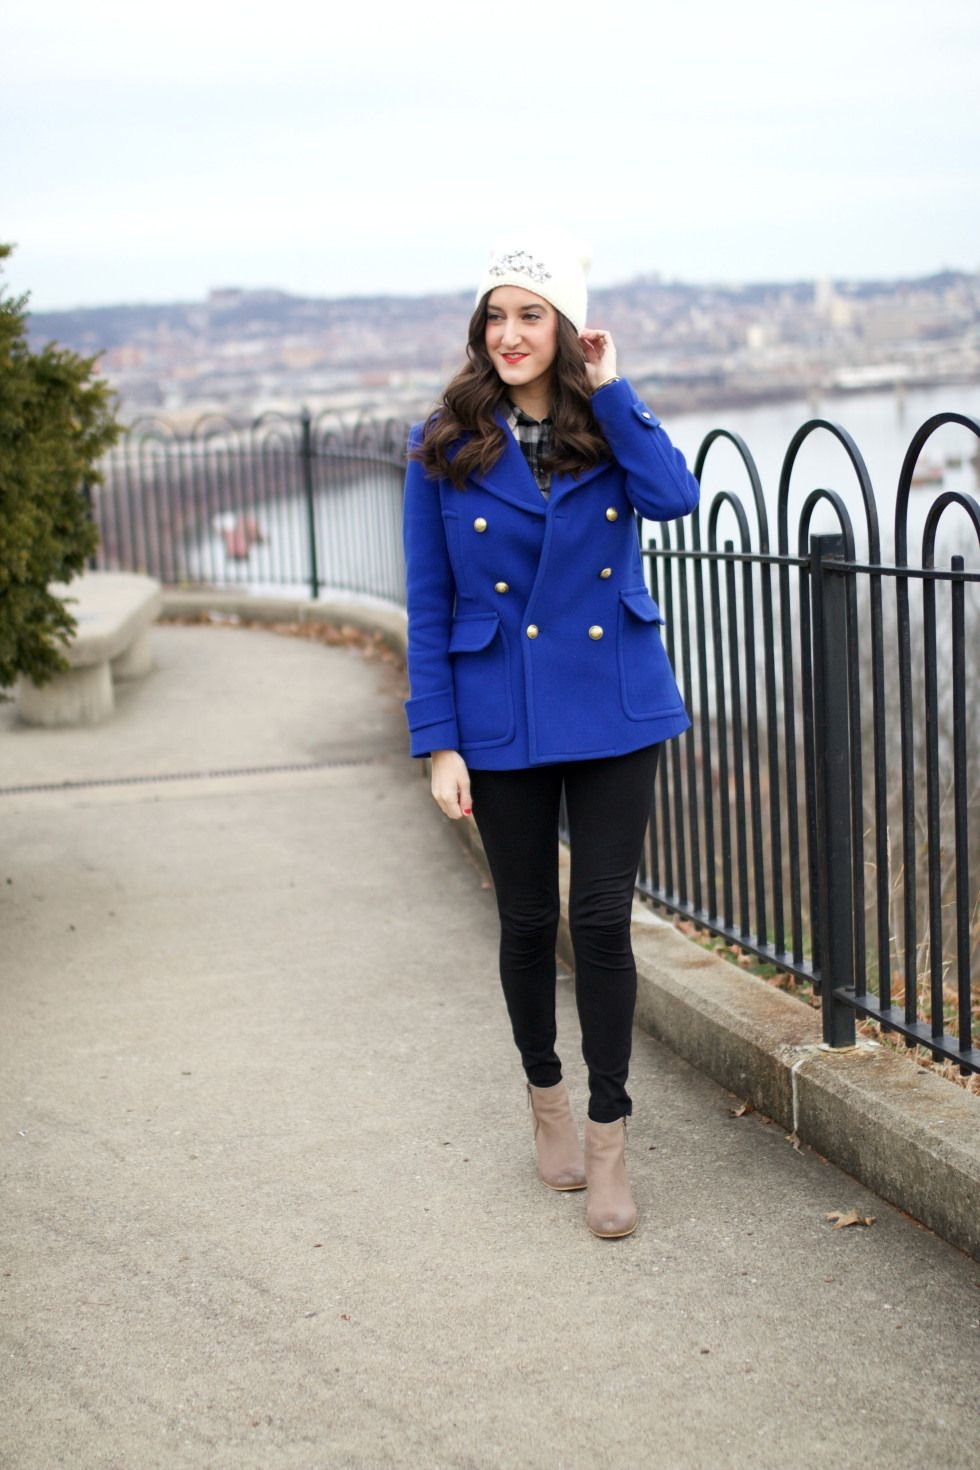 J.Crew Stadium Cloth Peacoat in cobalt blue. Paired with Pixie pants from J.Crew and BP Trolley booties. This is a simple, stylish and chic winter outfit idea. Stay warm and look dressed up!